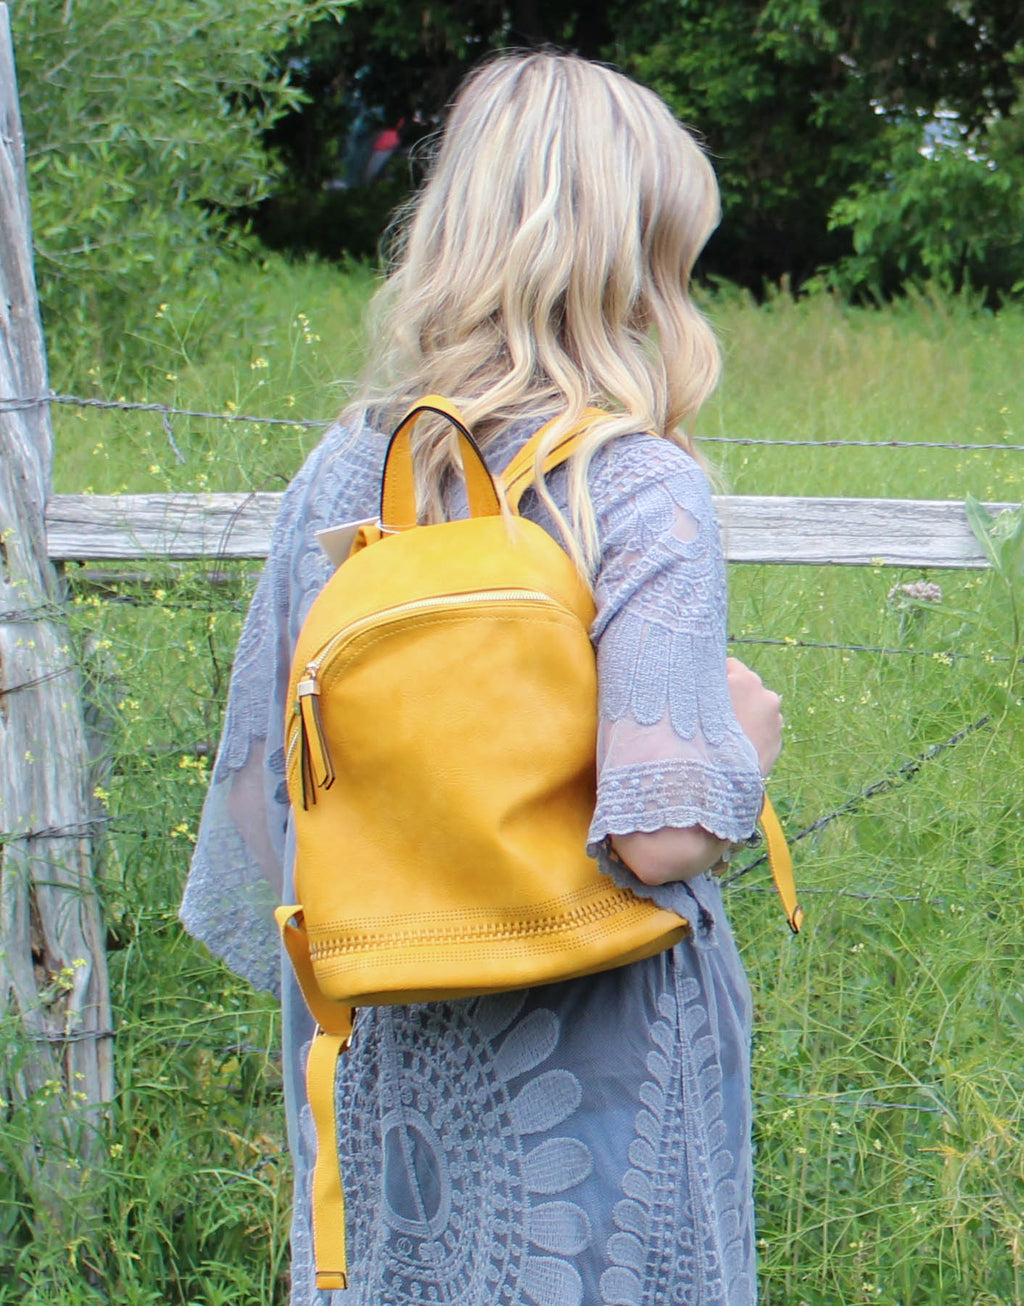 Emery Concealed Carry Backpack